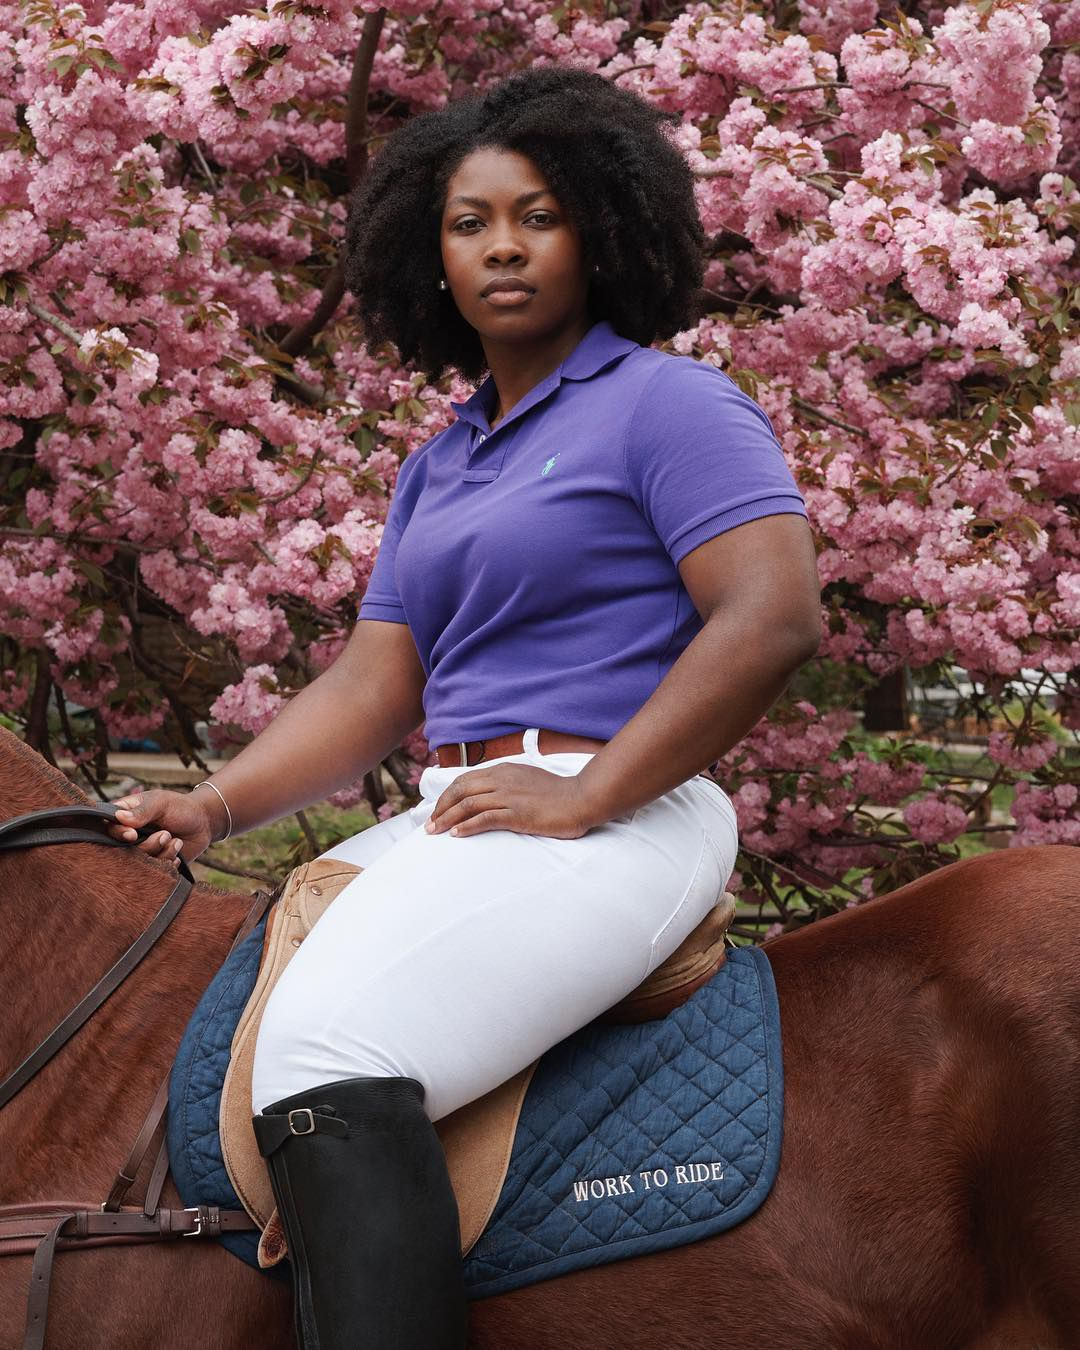 Shariah Harris by Sharif Hamza for Ralph Lauren Polo, Work to Ride West Philadelphia.